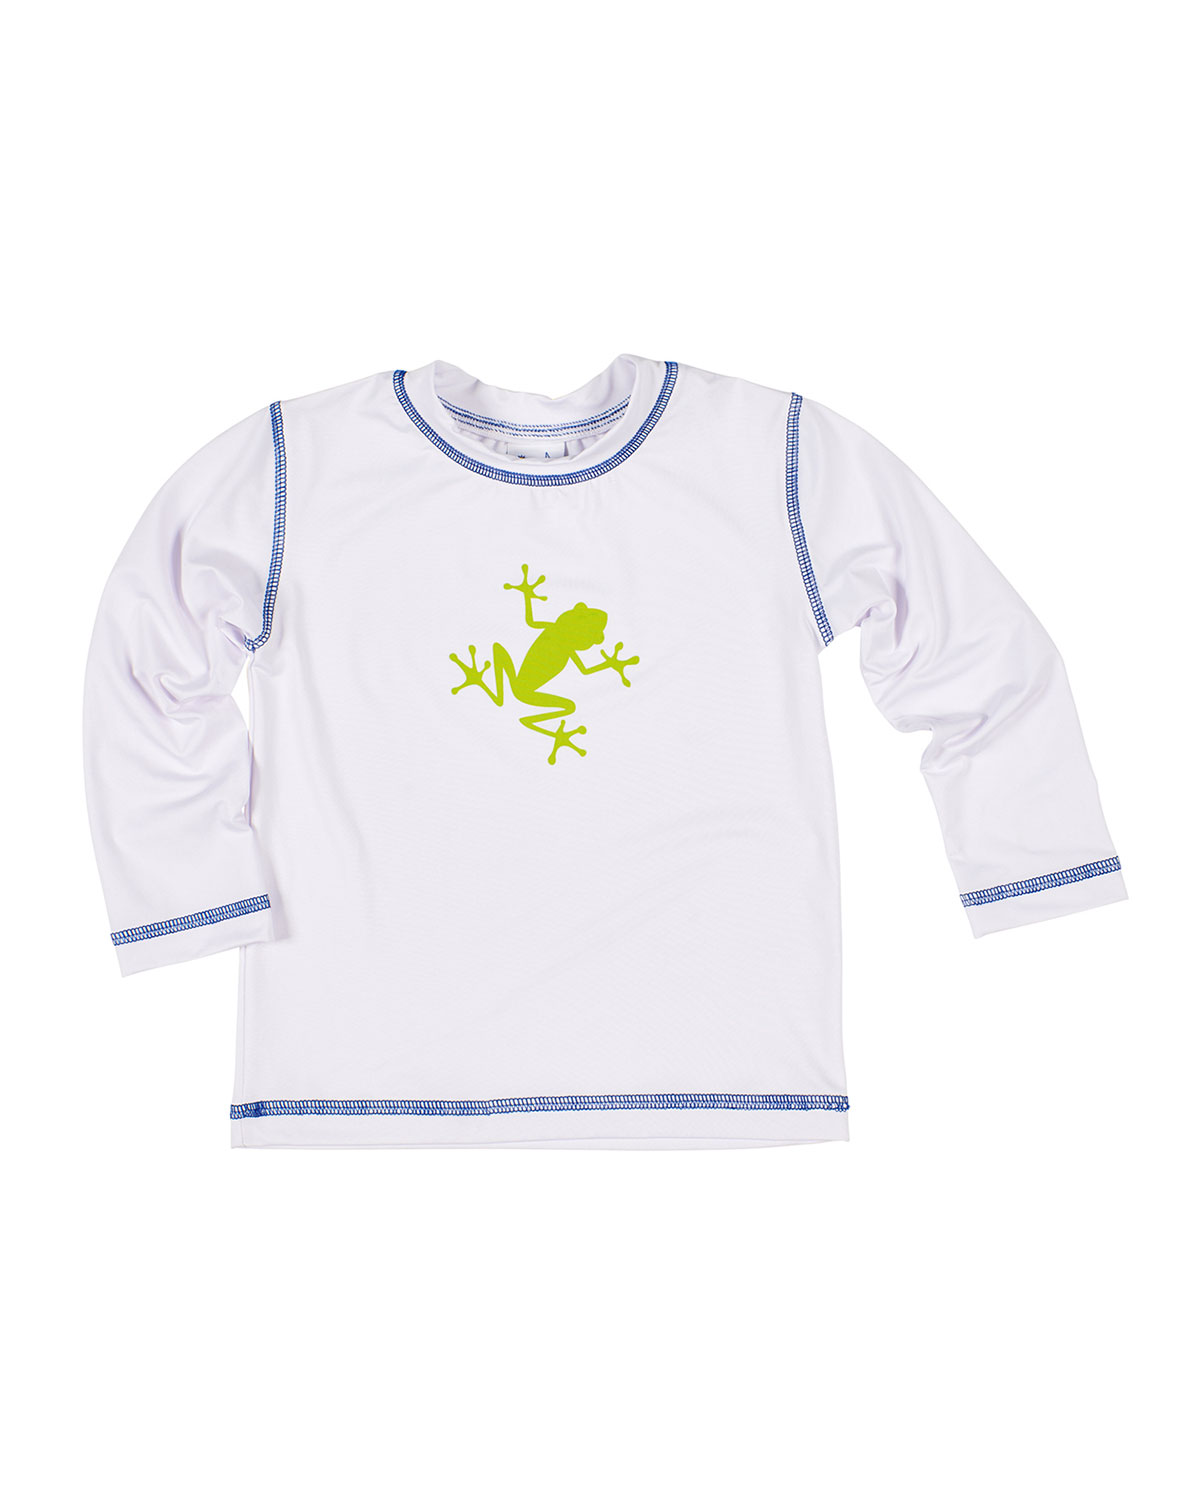 Florence Eiseman Boy's Frog Screen Printed Rash Guard, Size 6-24 Months